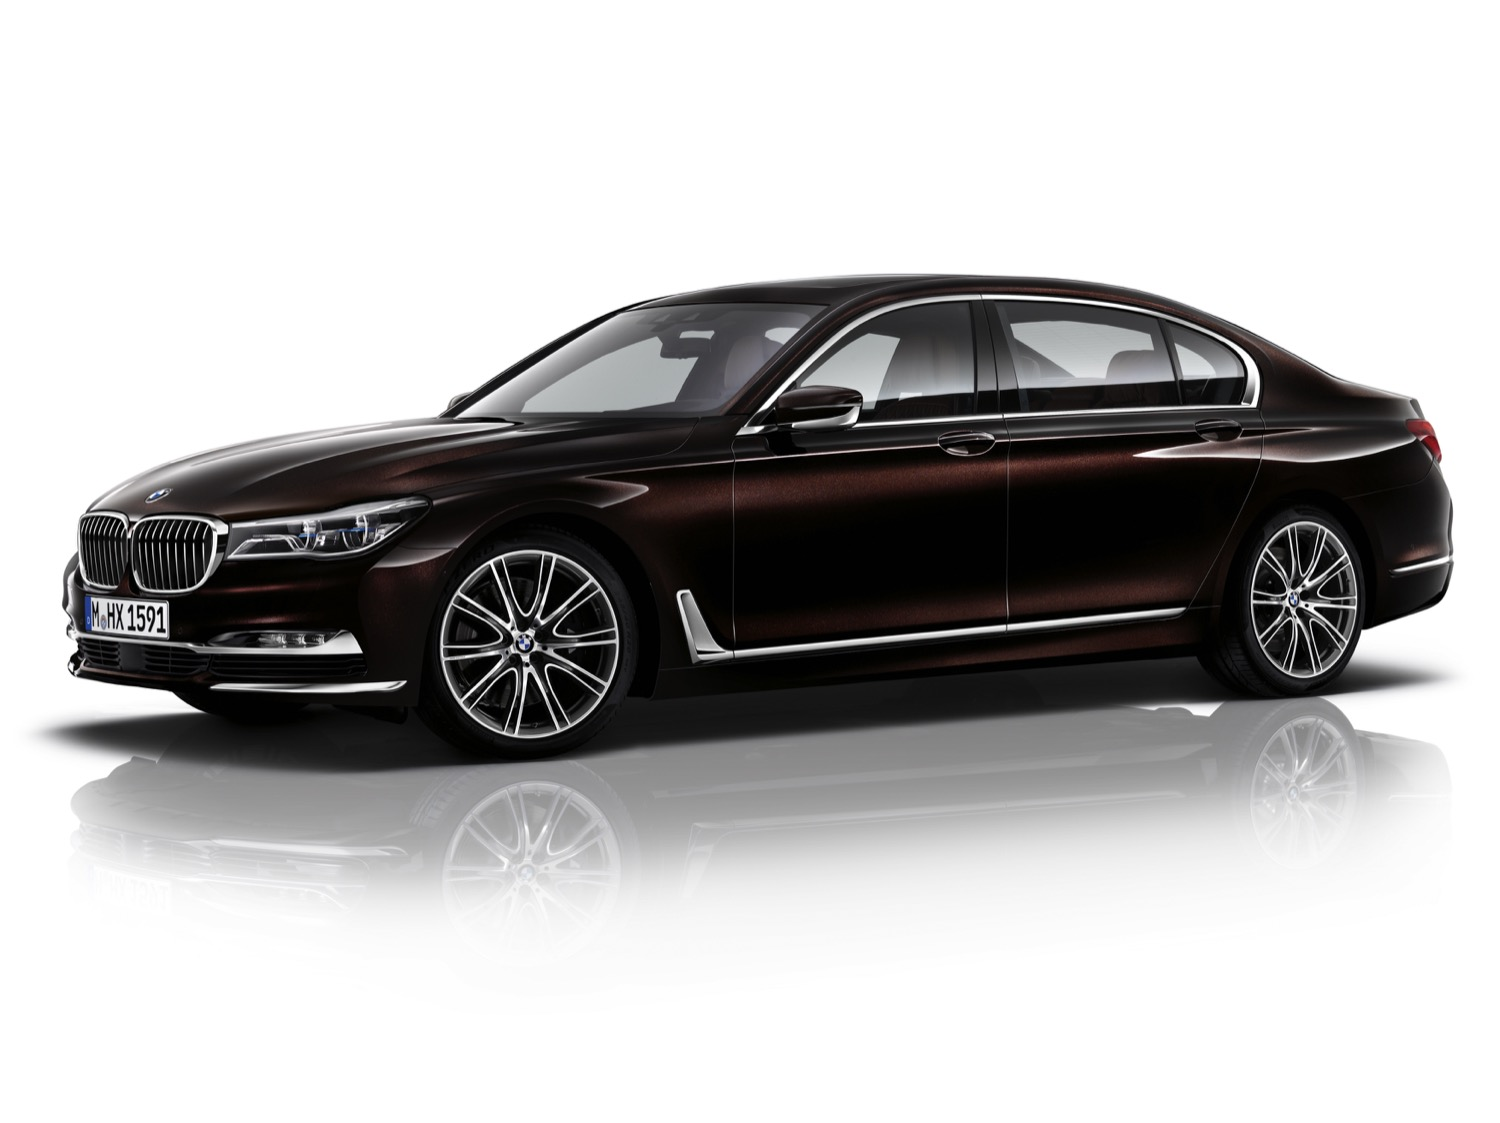 2016 bmw 7 series motrolix. Black Bedroom Furniture Sets. Home Design Ideas